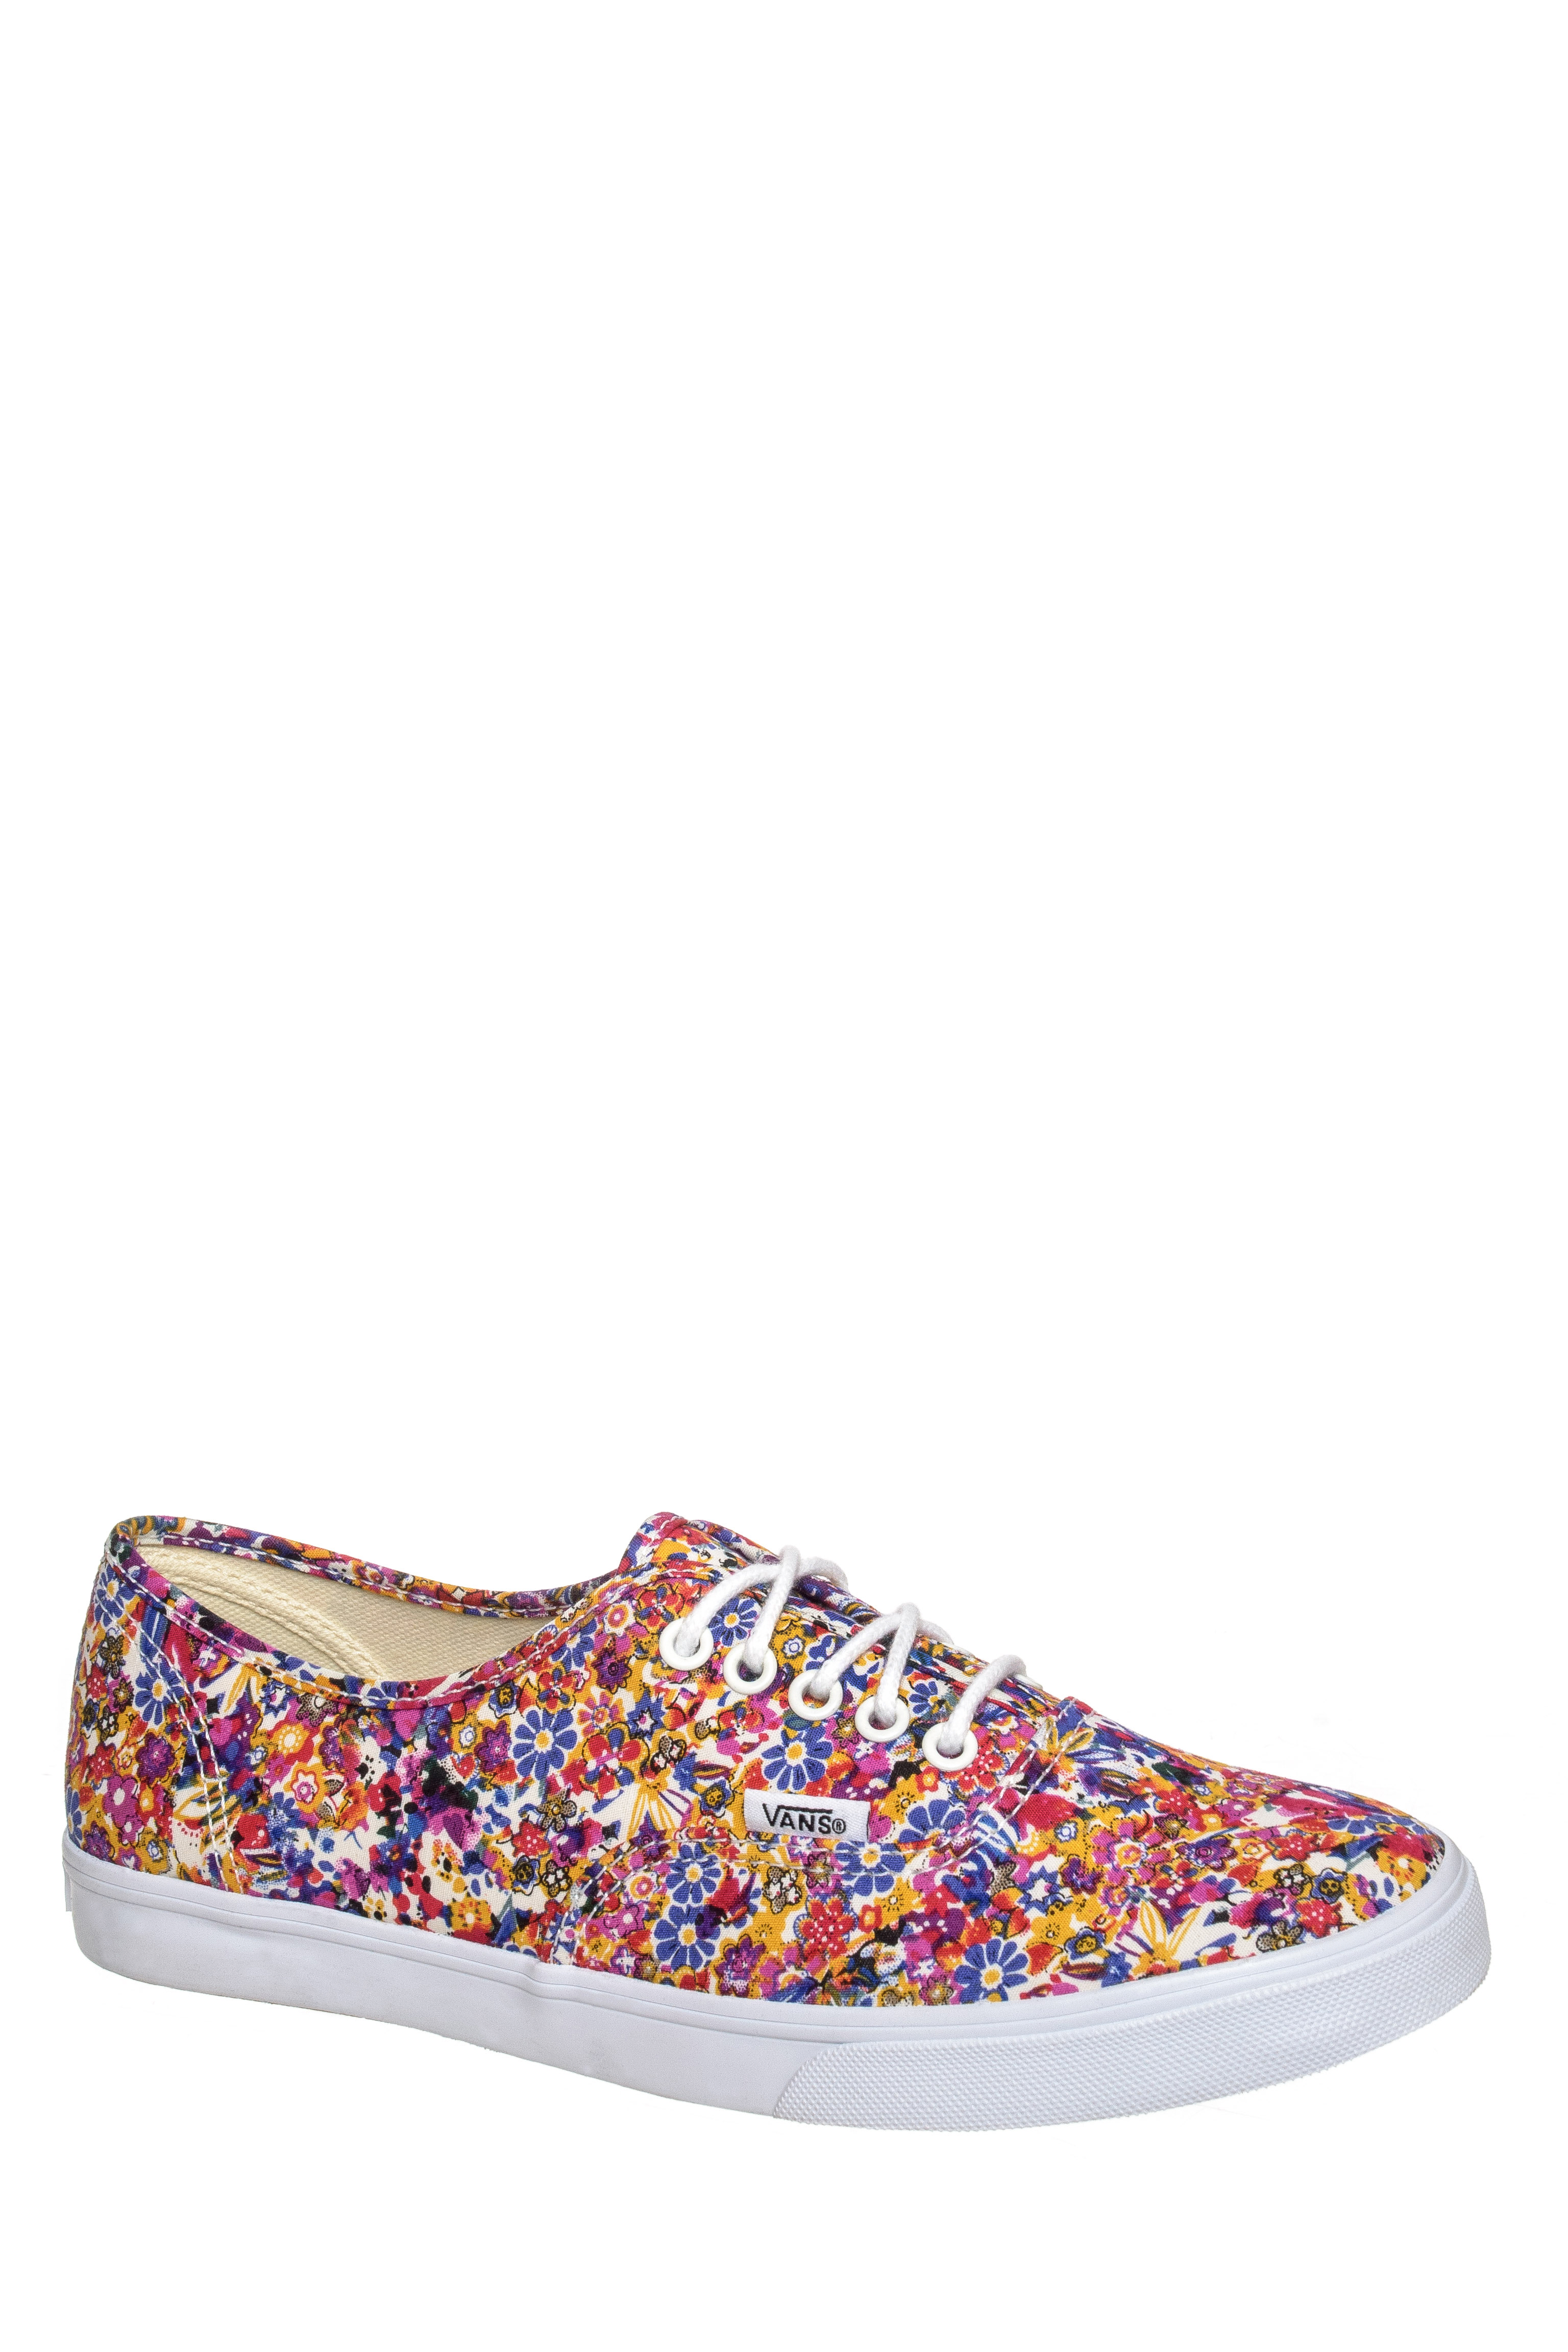 Vans Ditsy Floral Authentic Lo Pro Low Top Sneakers